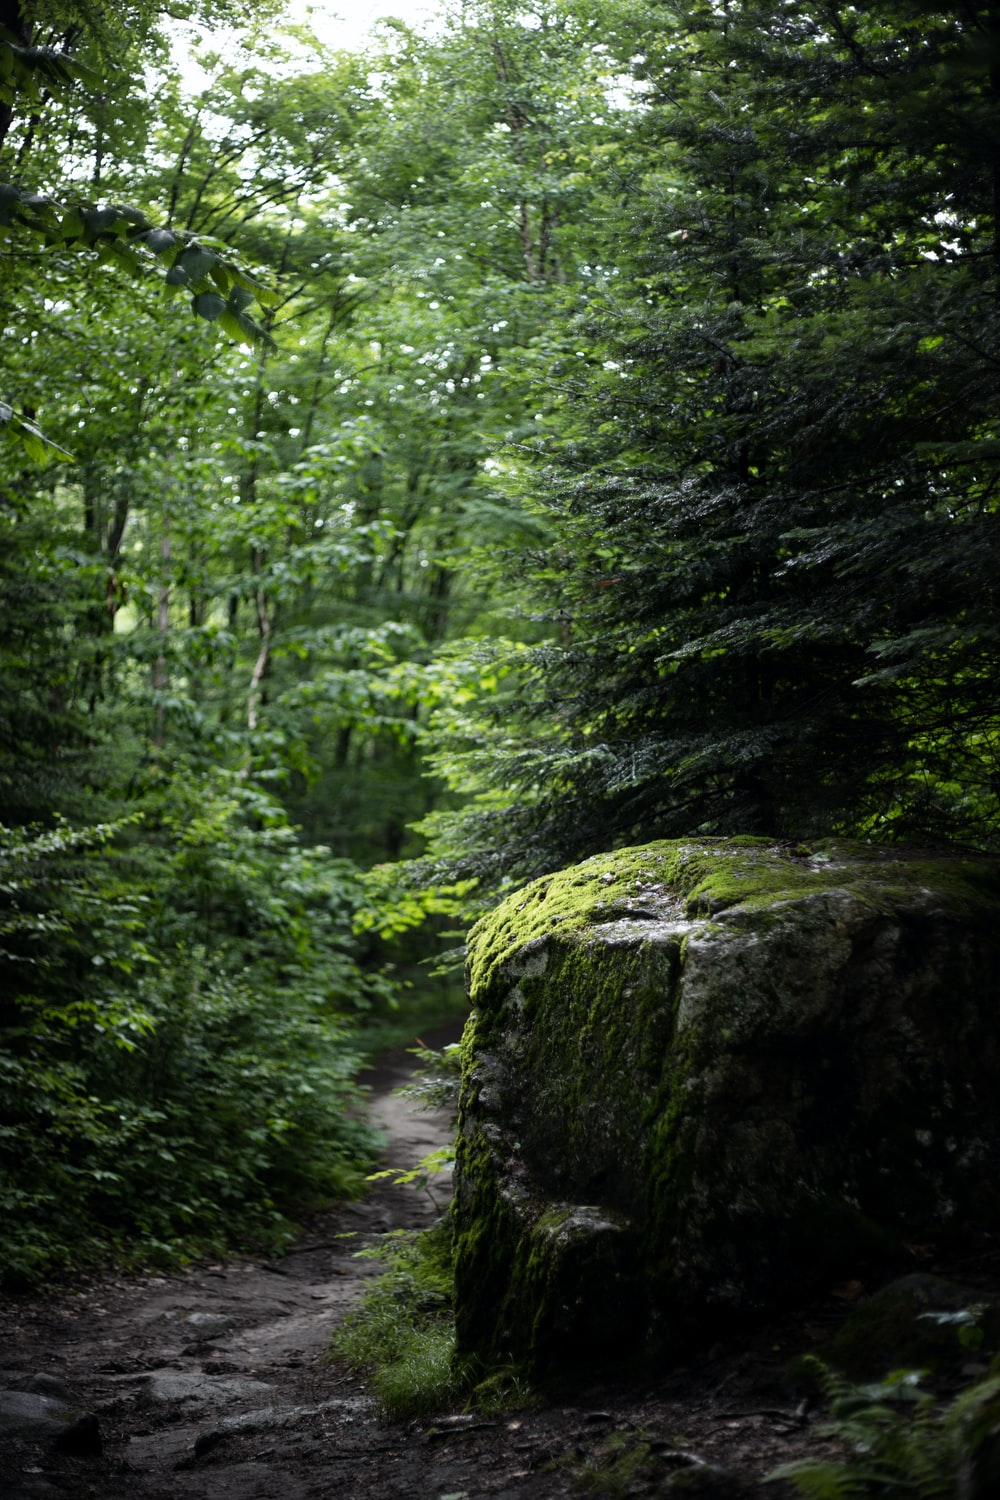 green trees in forest